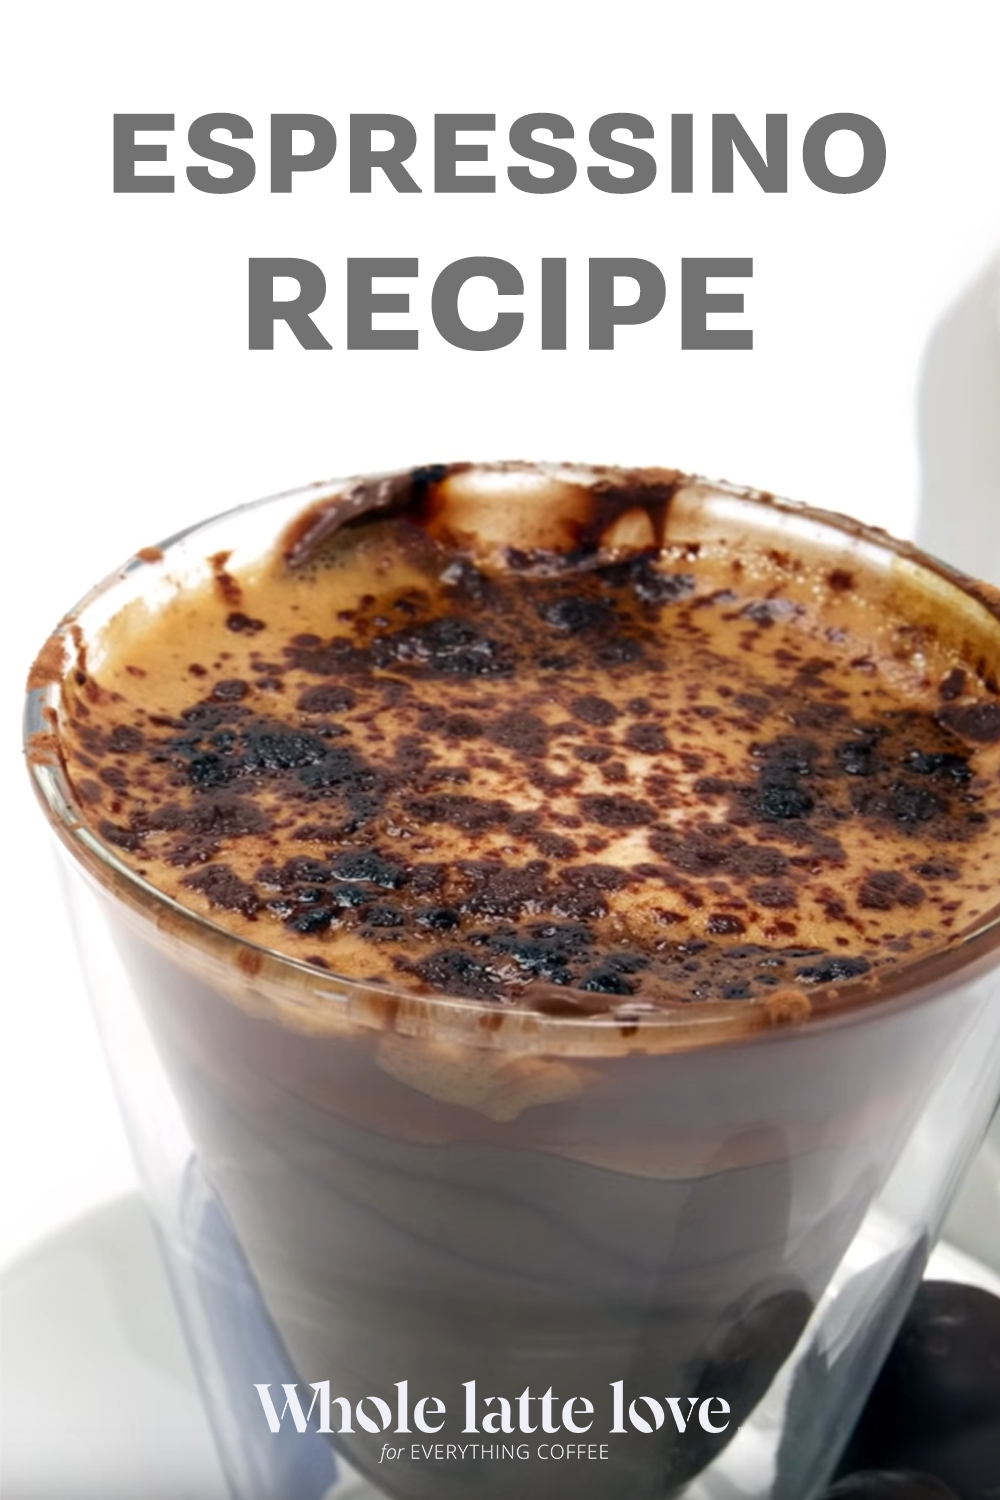 Whole Latte Love shows you how to make an espressino. This